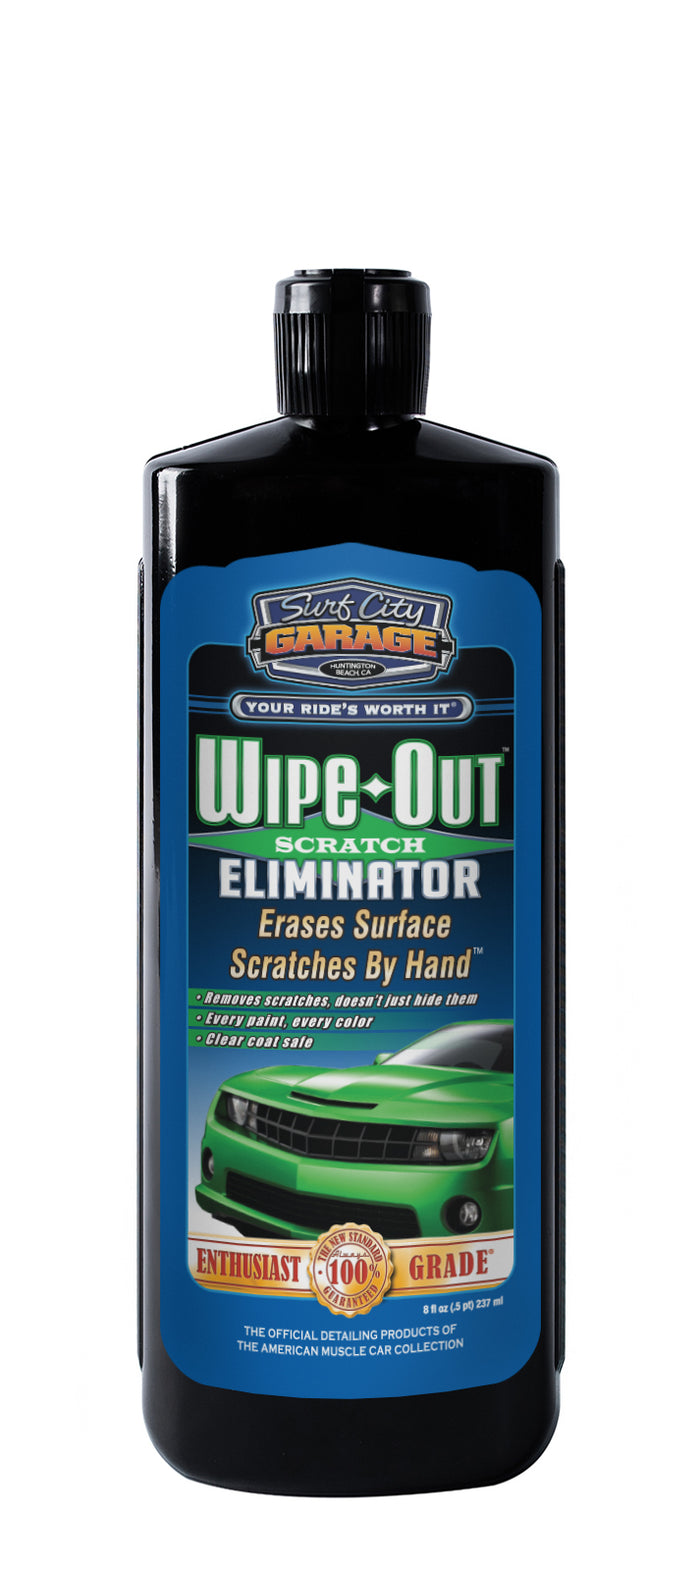 Wipe Out™ Scratch Eliminator